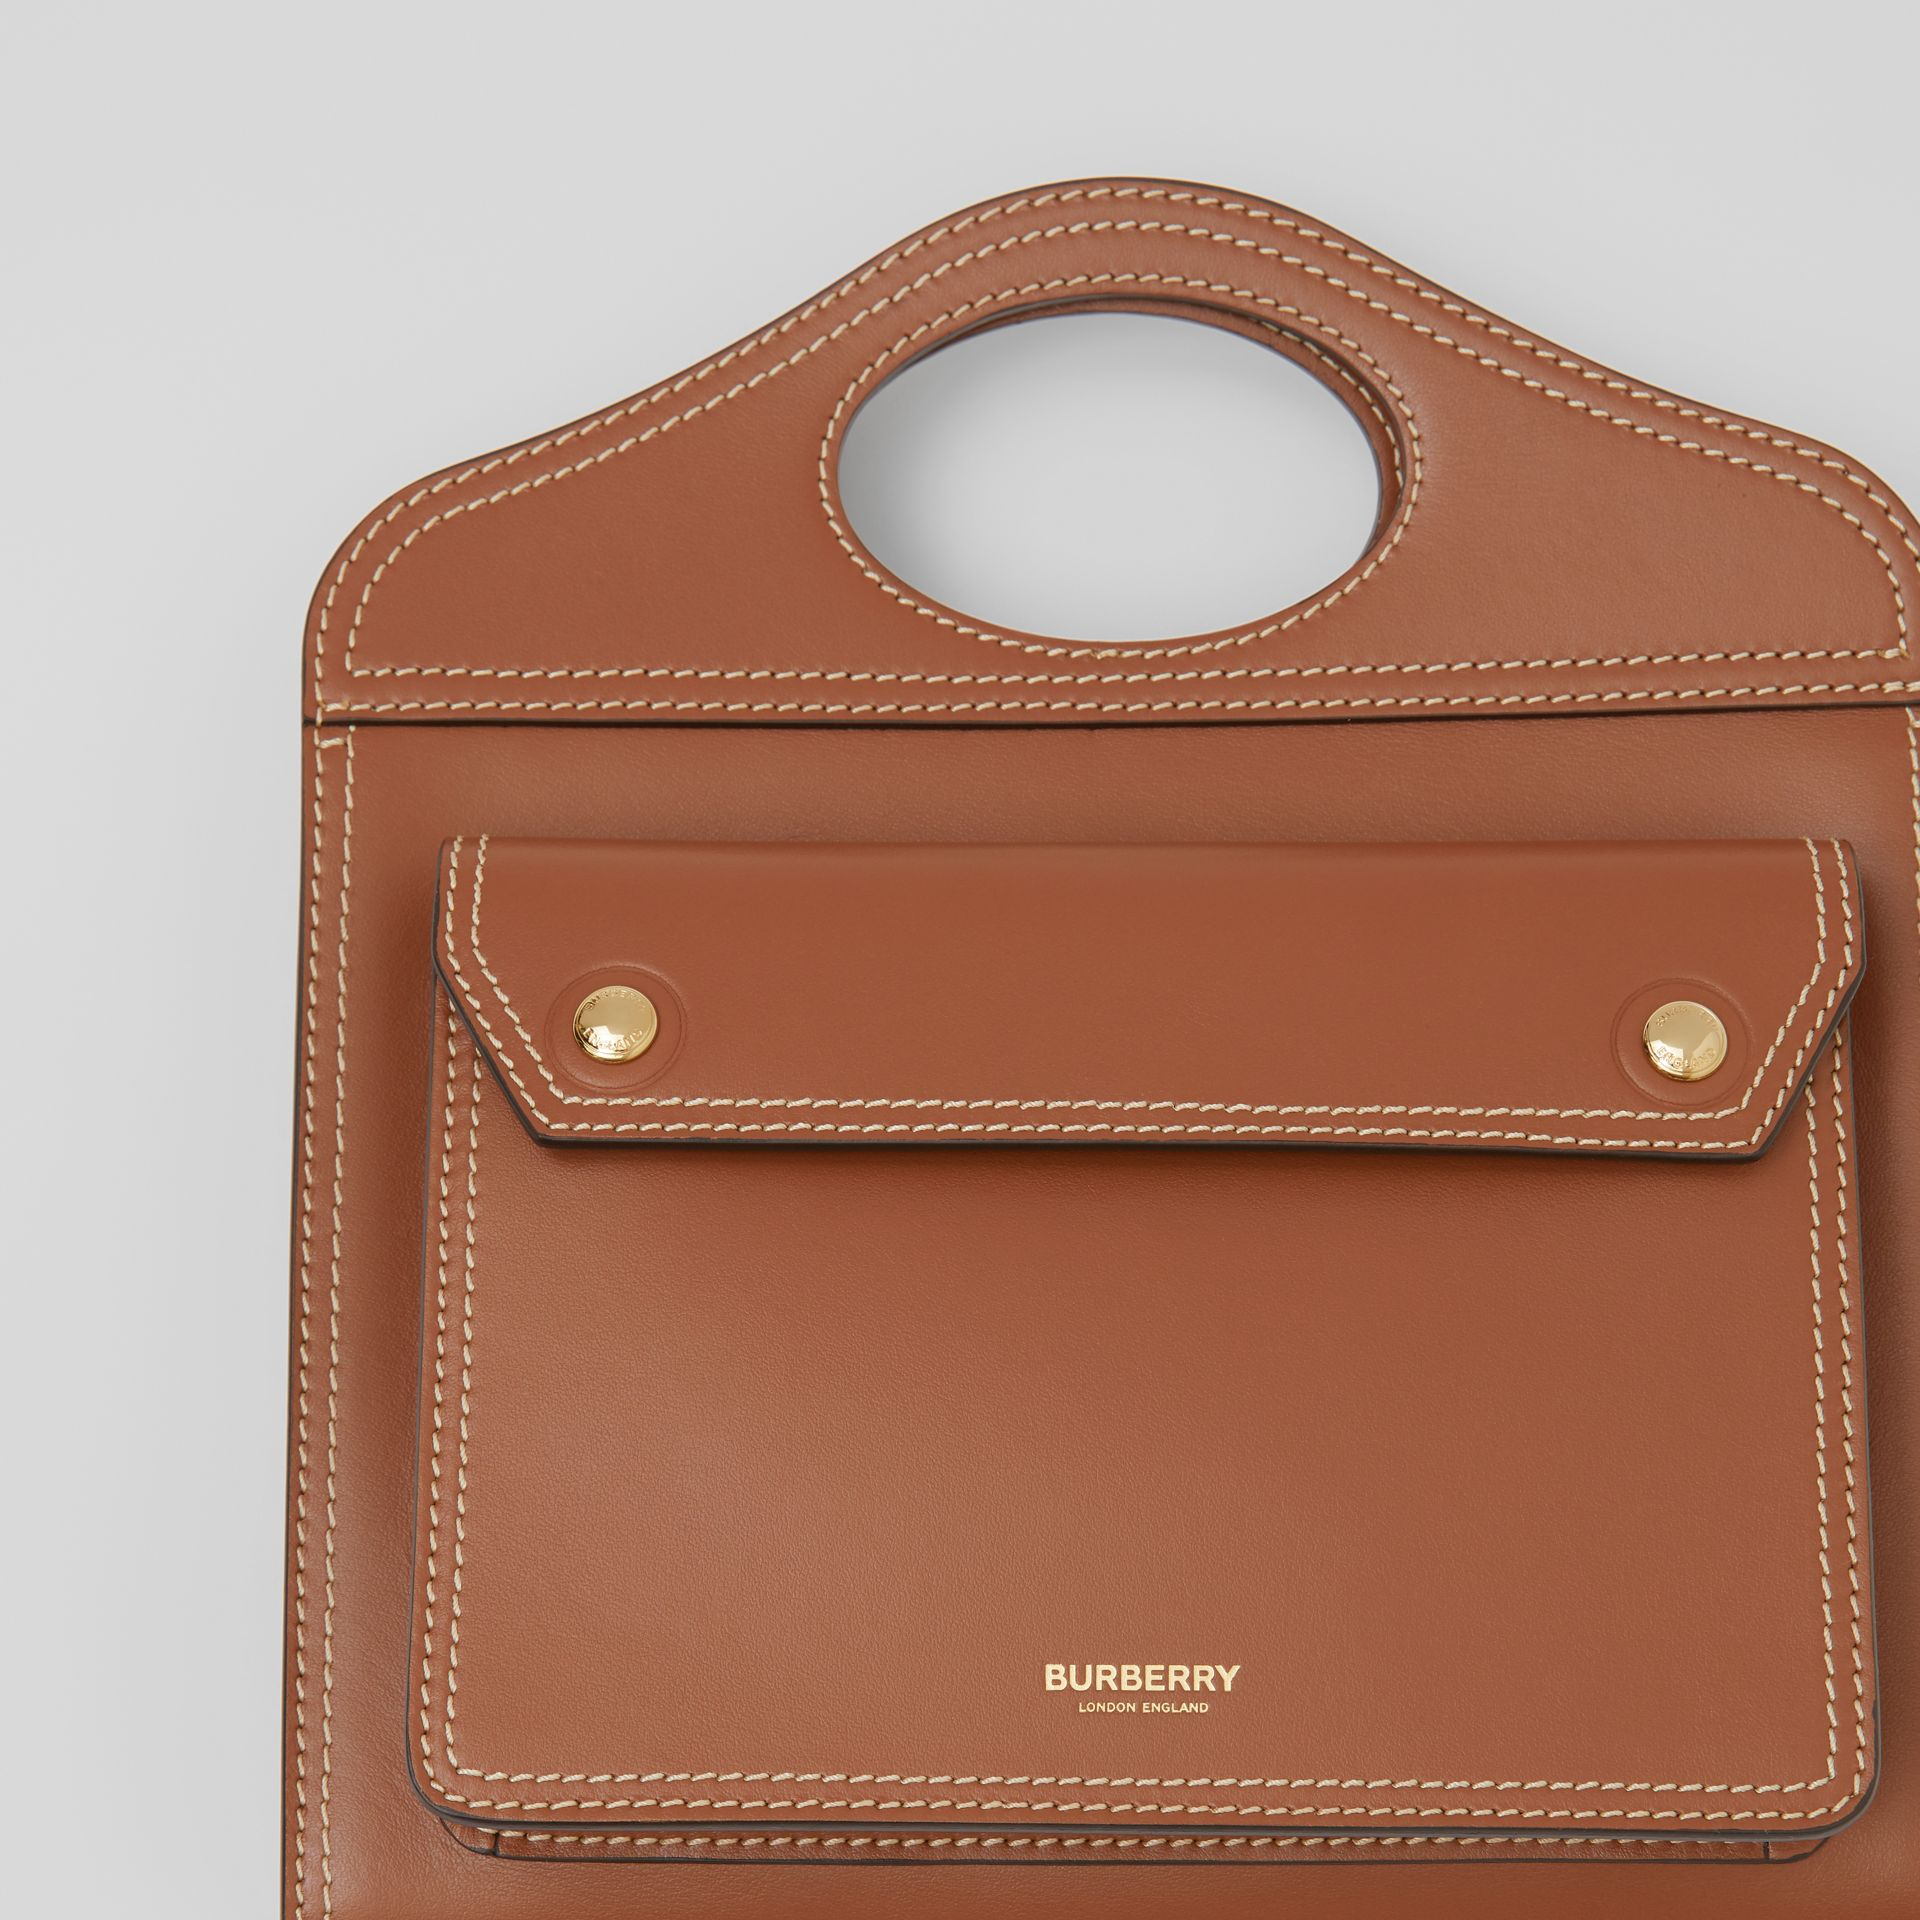 Medium Topstitch Detail Leather Pocket Bag in Malt Brown - Women | Burberry - gallery image 1